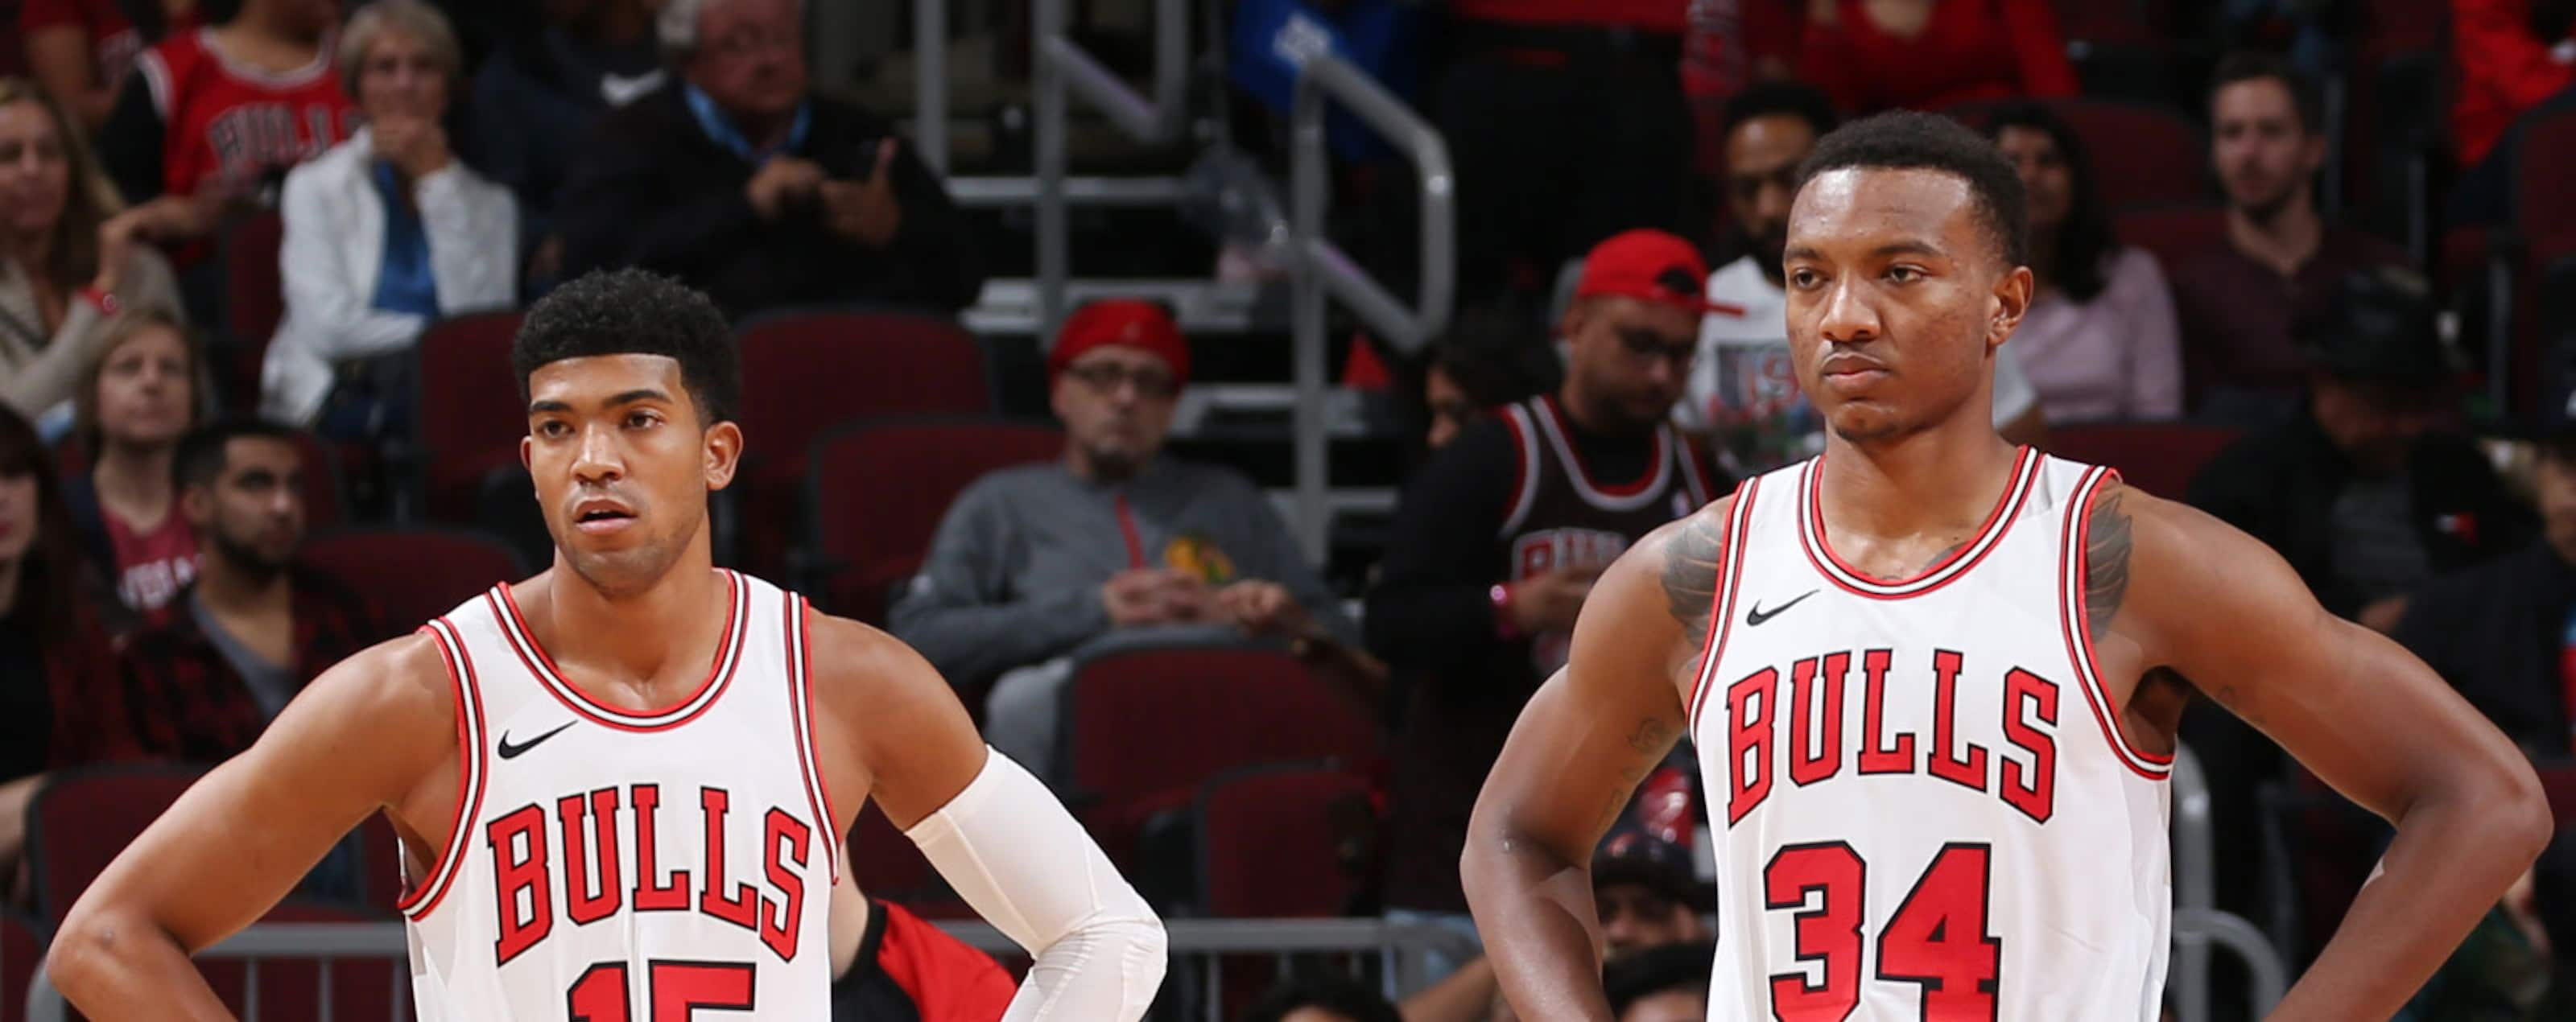 Chandler Hutchison #15 and Wendell Carter Jr., #34 of the Chicago Bulls look on against the Indiana Pacers during a pre-season game on October 10, 2018 at the United Center in Chicago, Illinois.